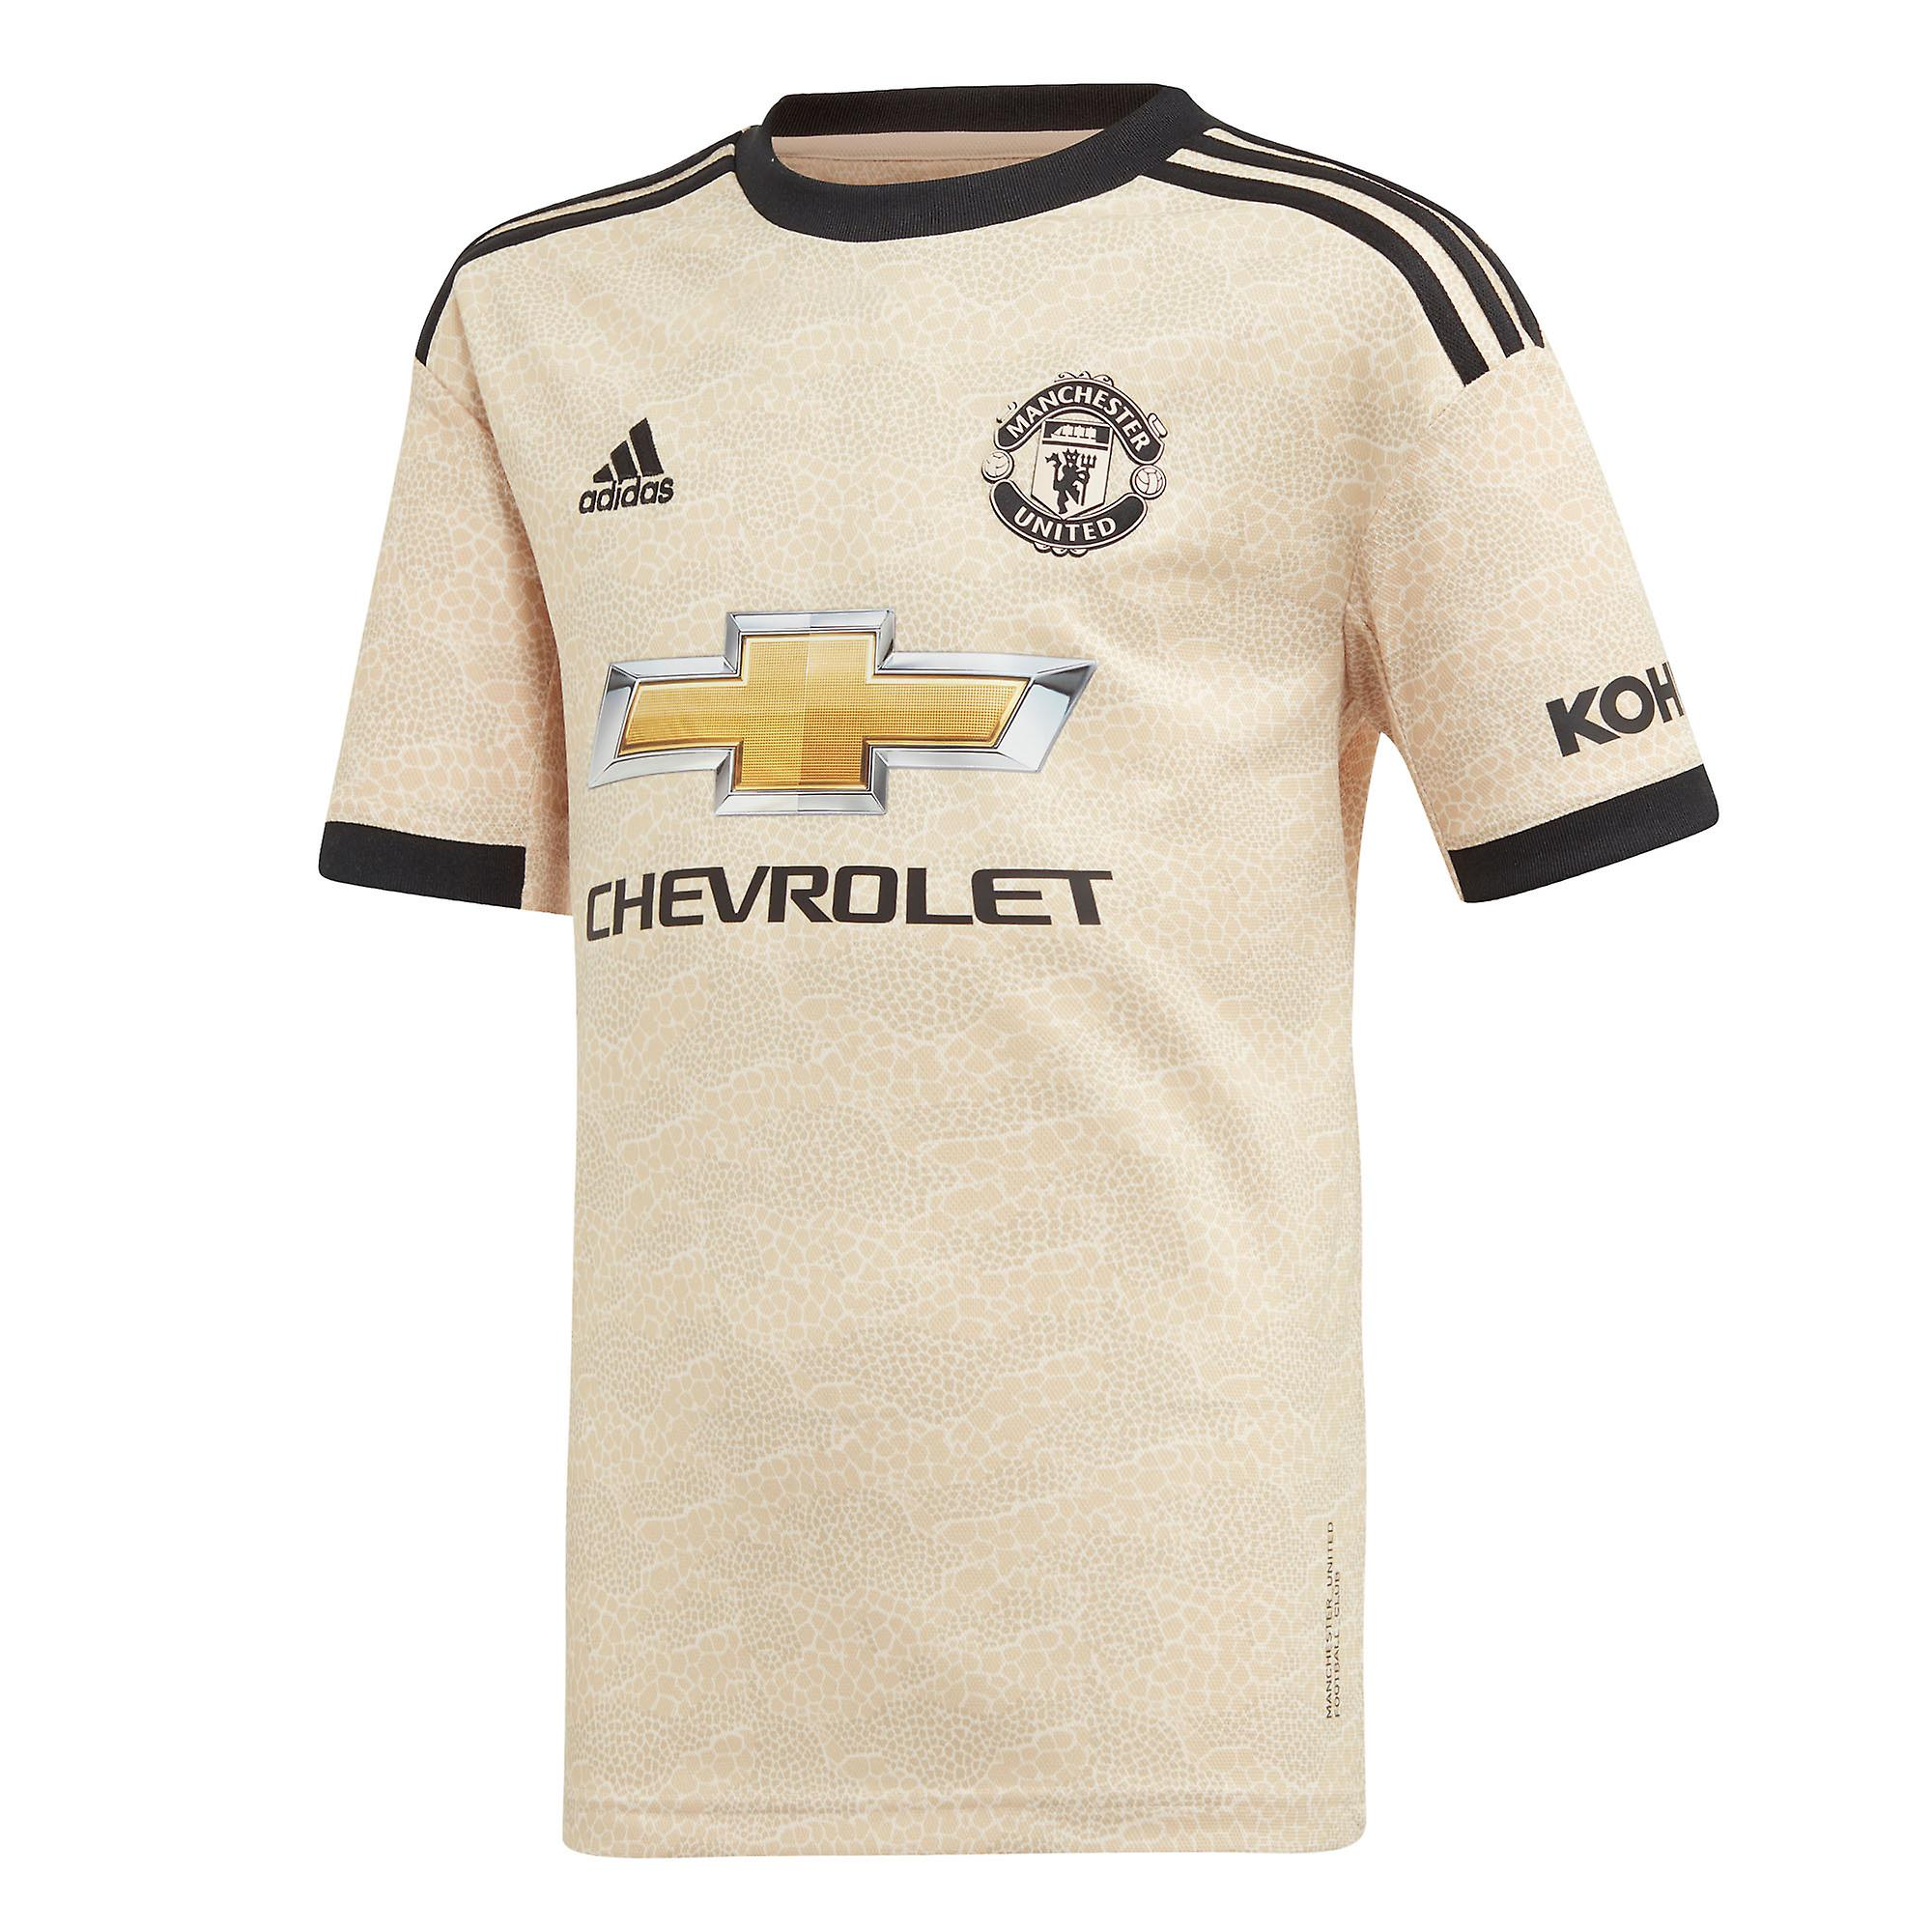 Manchester United release new 201920 third kit by adidas